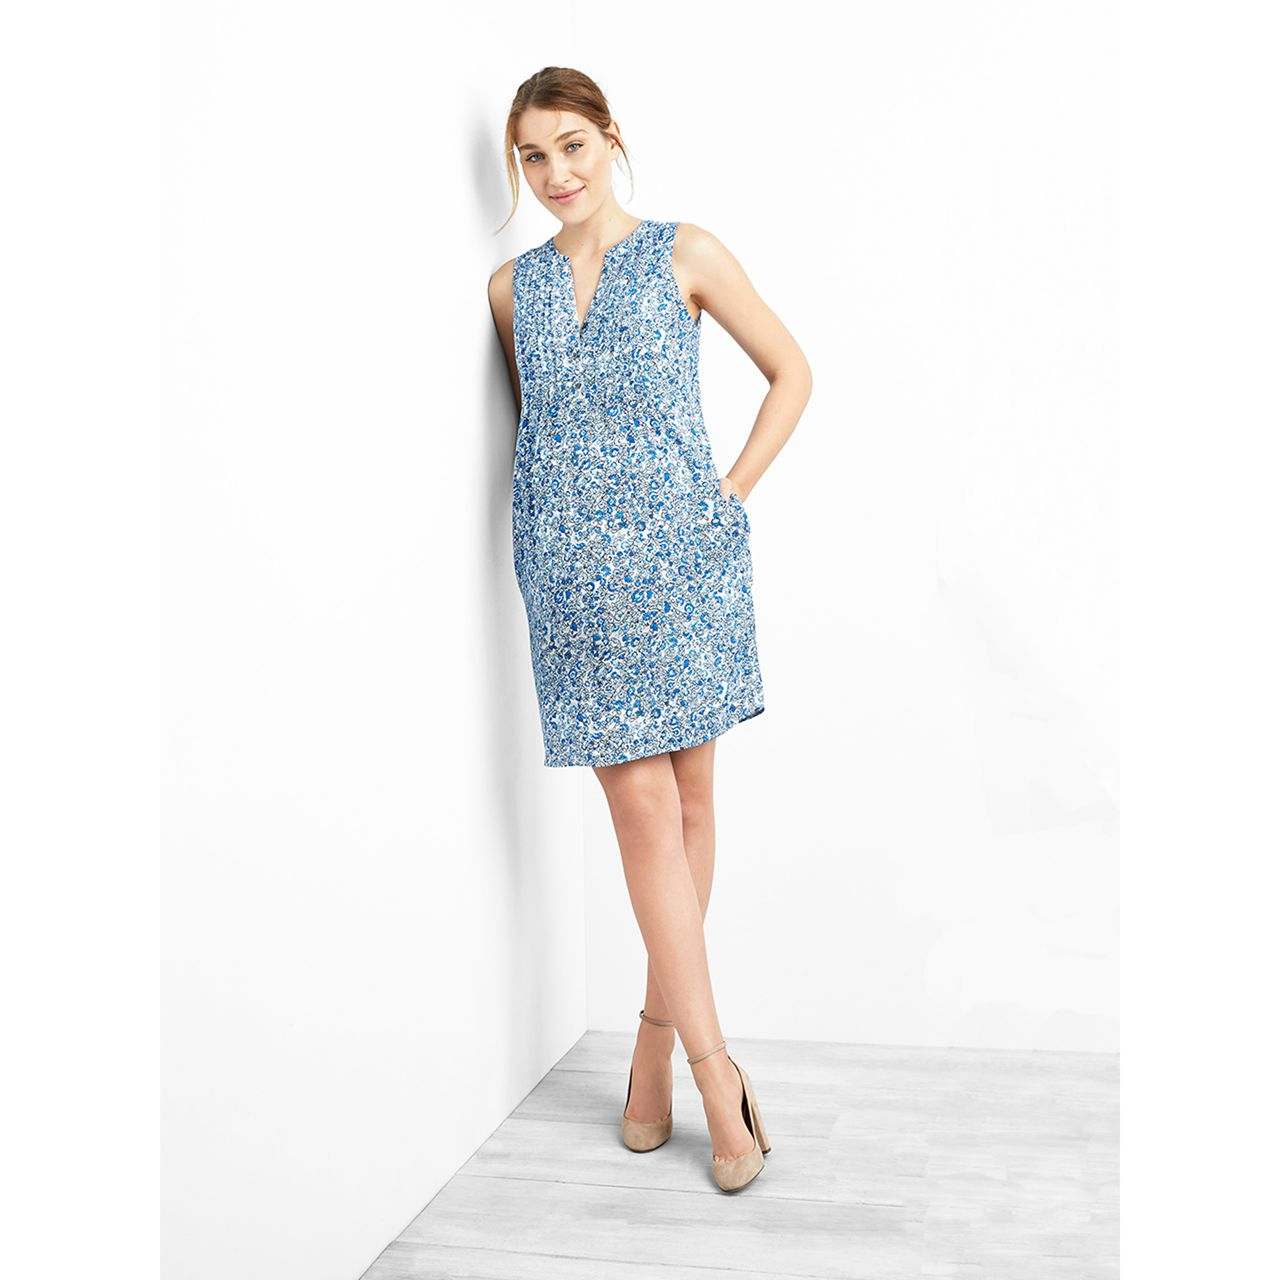 Usd 9429 gap maternity dress floral pattern sleeveless stitching lightbox moreview lightbox moreview lightbox moreview prevnext gap maternity dress ombrellifo Image collections